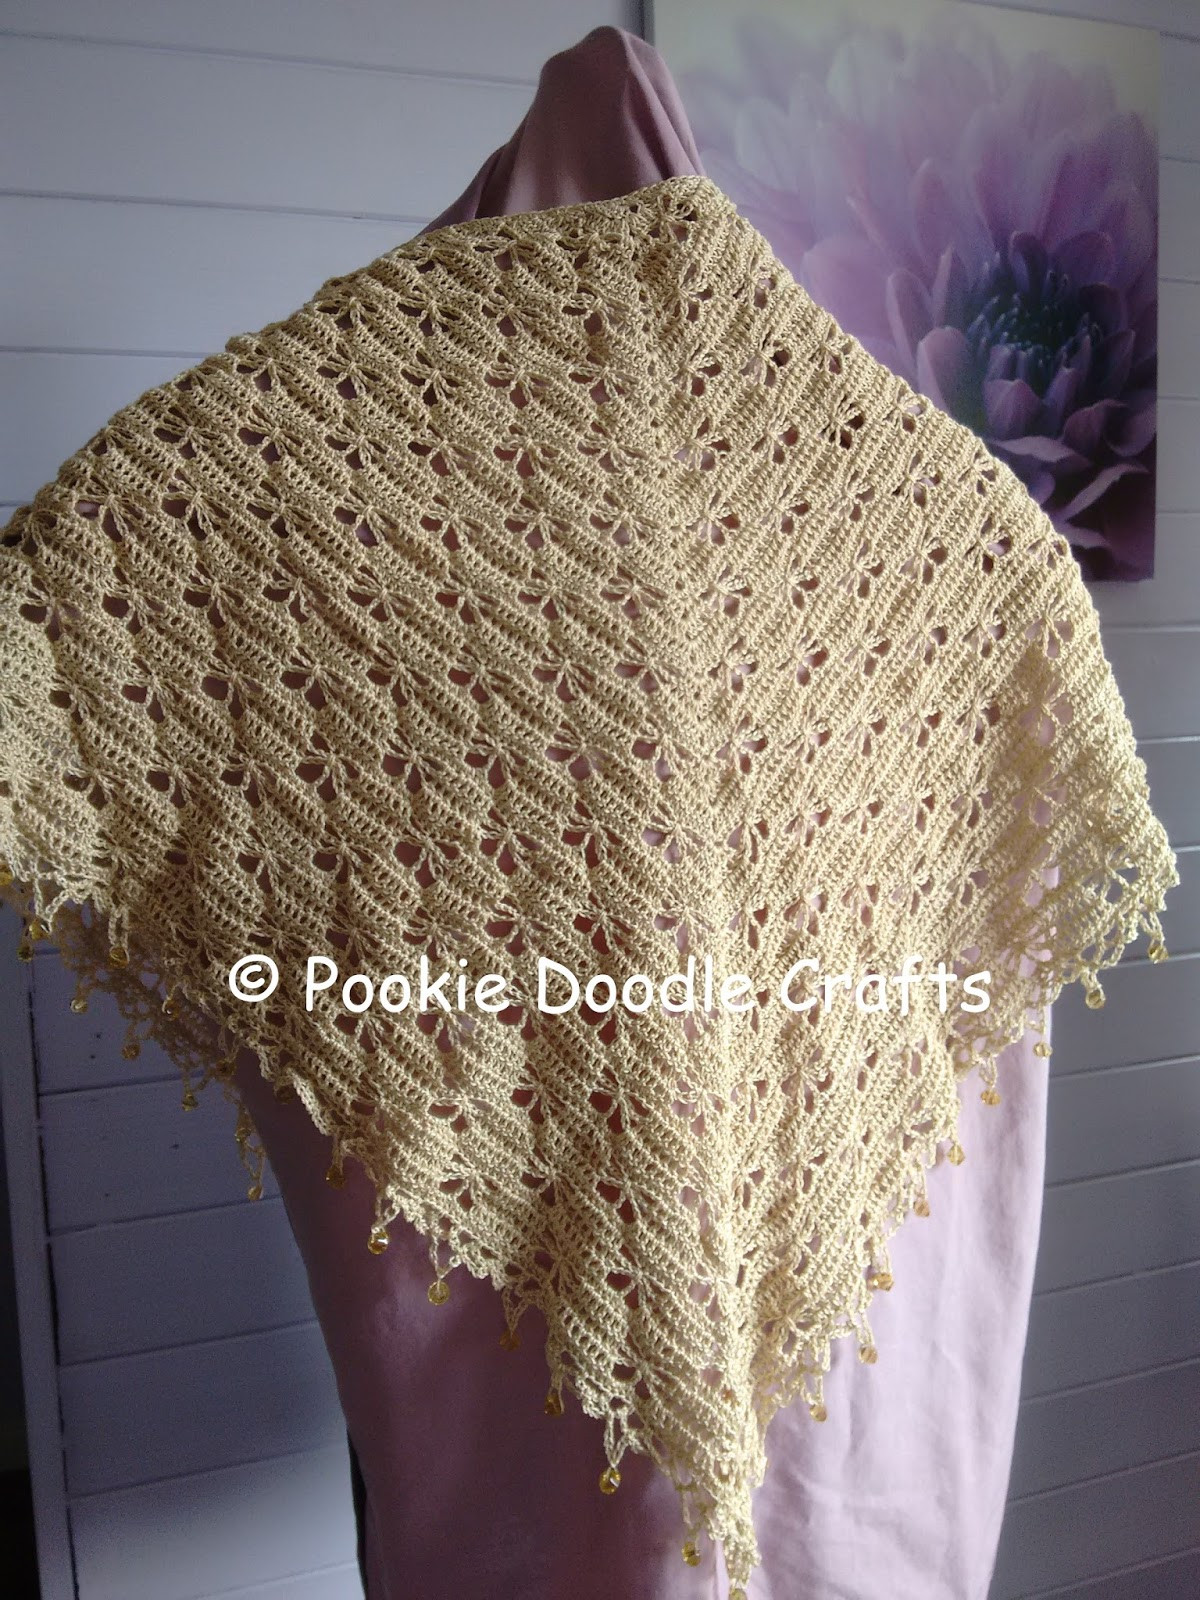 Beautiful Pookie Doodle Crafts butterfly Stitch Crochet Shawl butterfly Shawl Of Wonderful 44 Pics butterfly Shawl